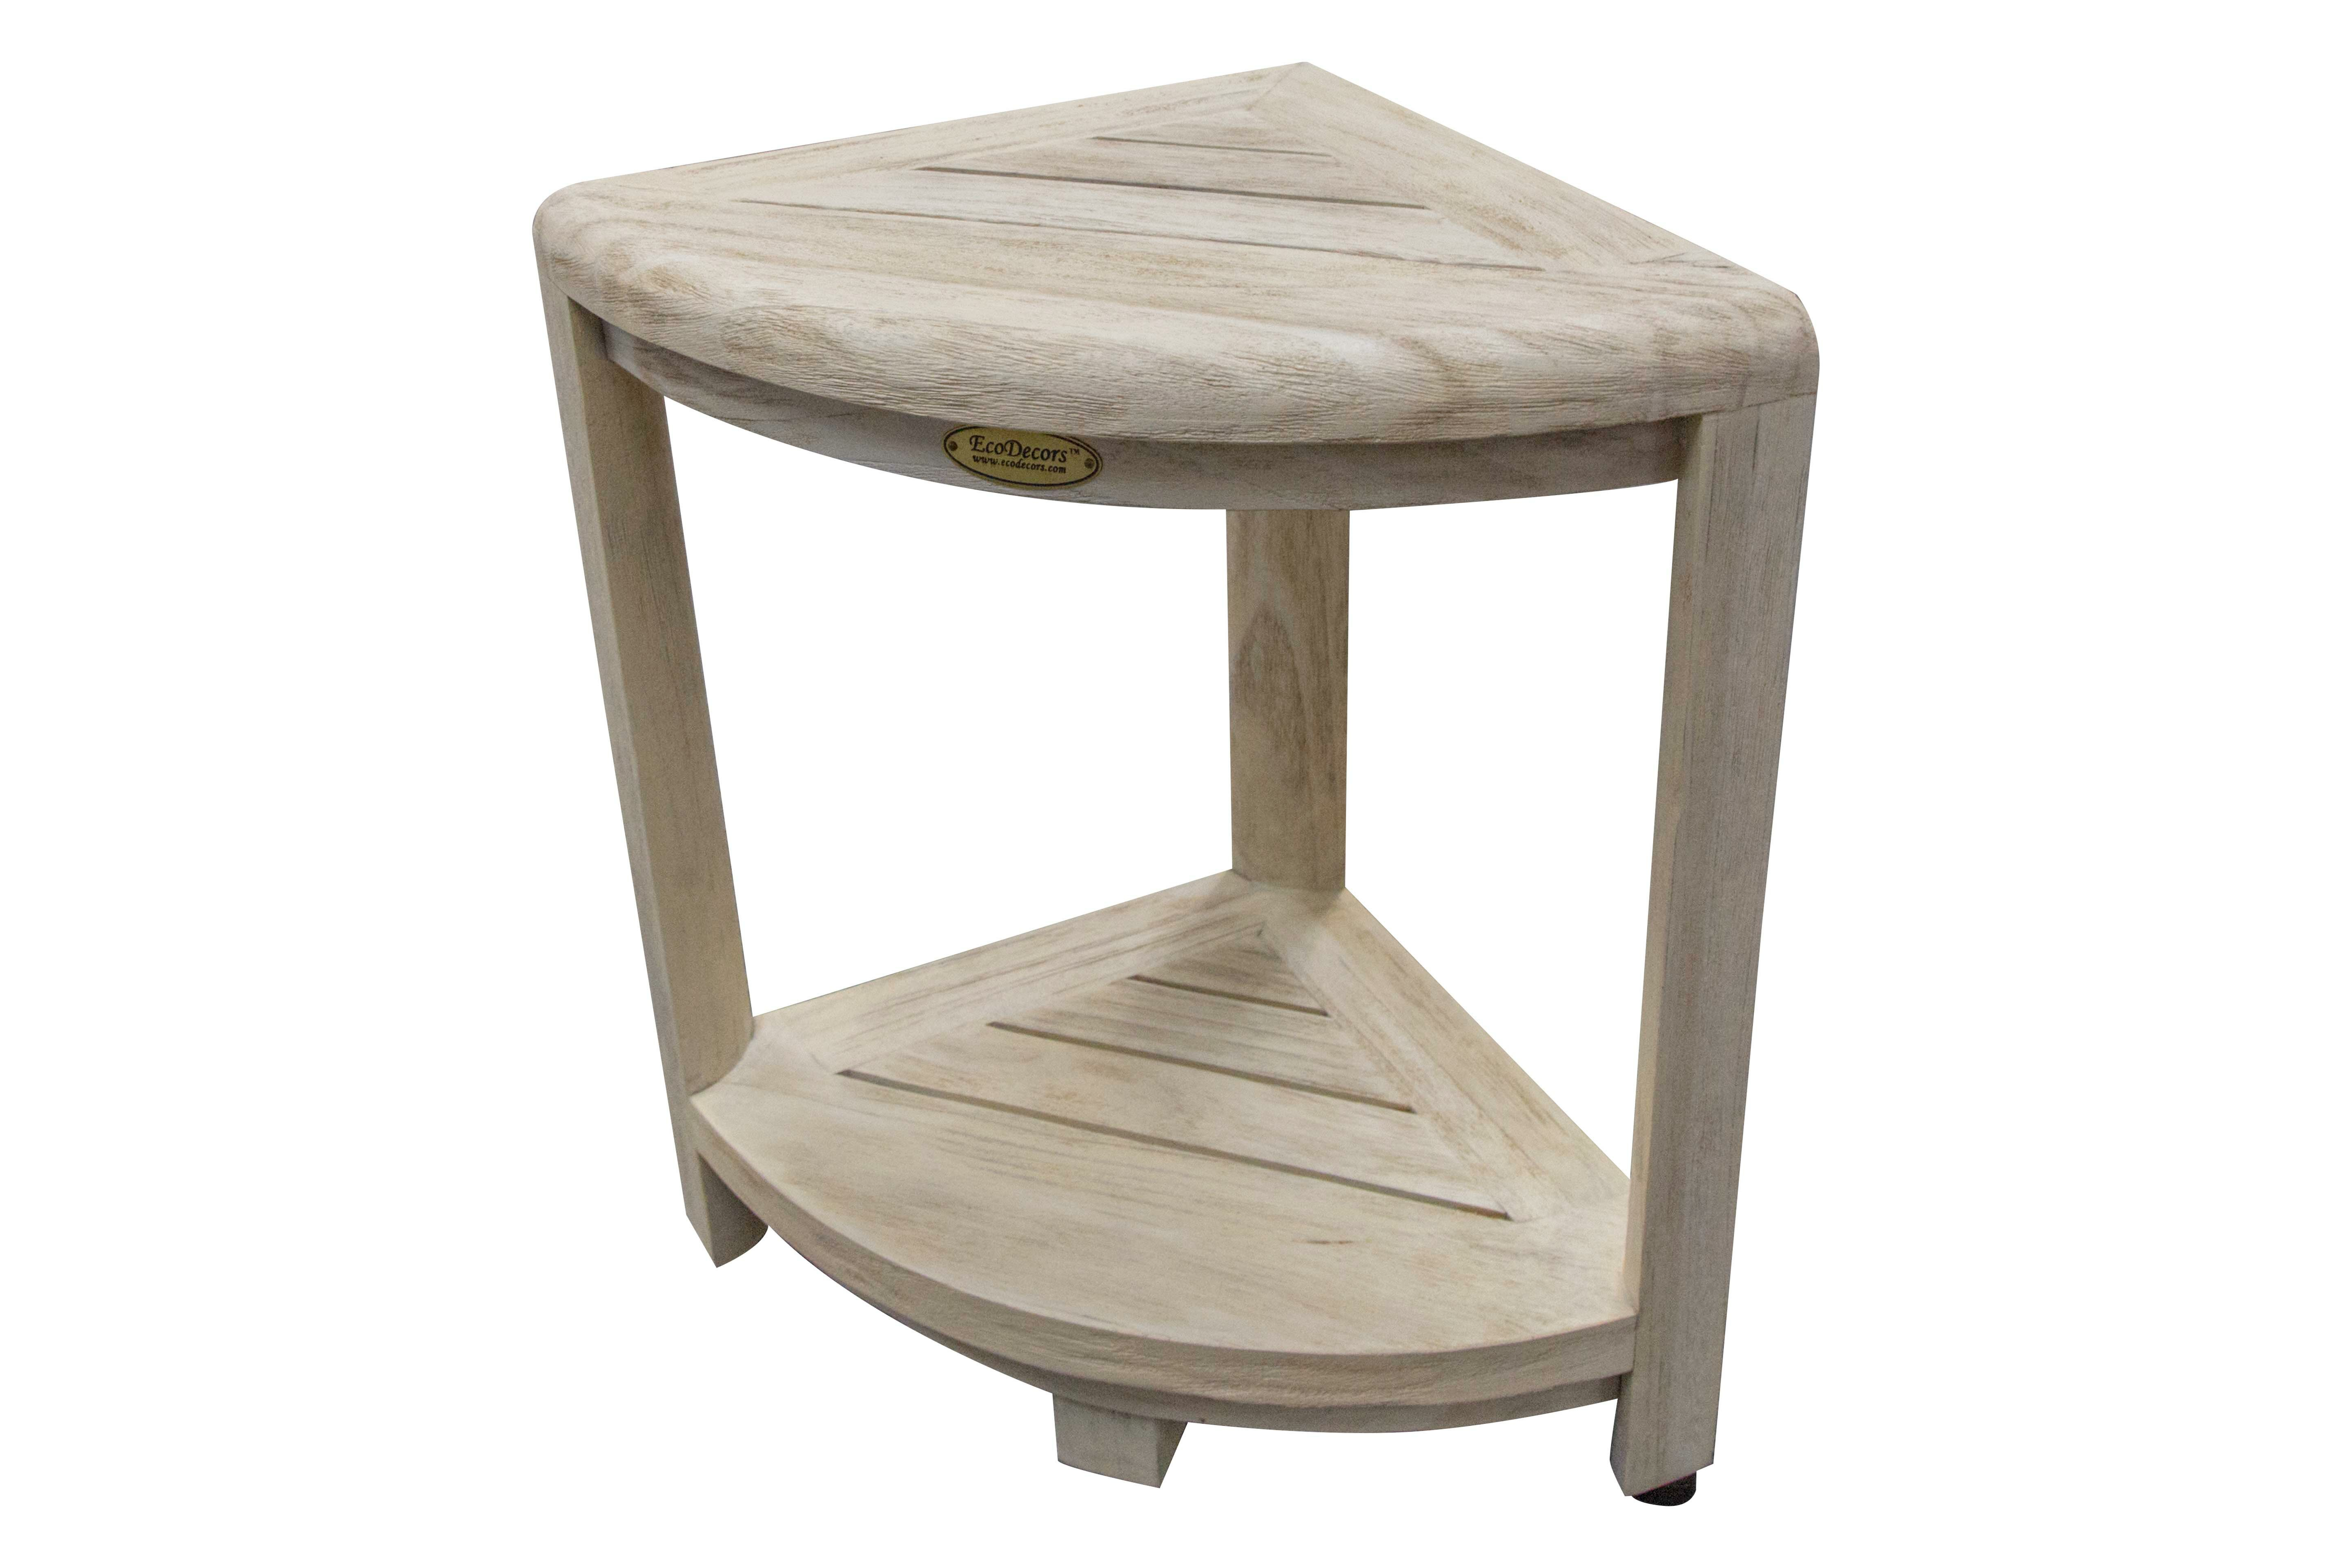 Bath Shower Stools Benches Tools Home Improvement Shower Seat Doubles As A Corner Shower Stool Wood Style Bathroom Bench Bathroom Stool With Storage Shelf Shower Bench Waterproof Small Shower